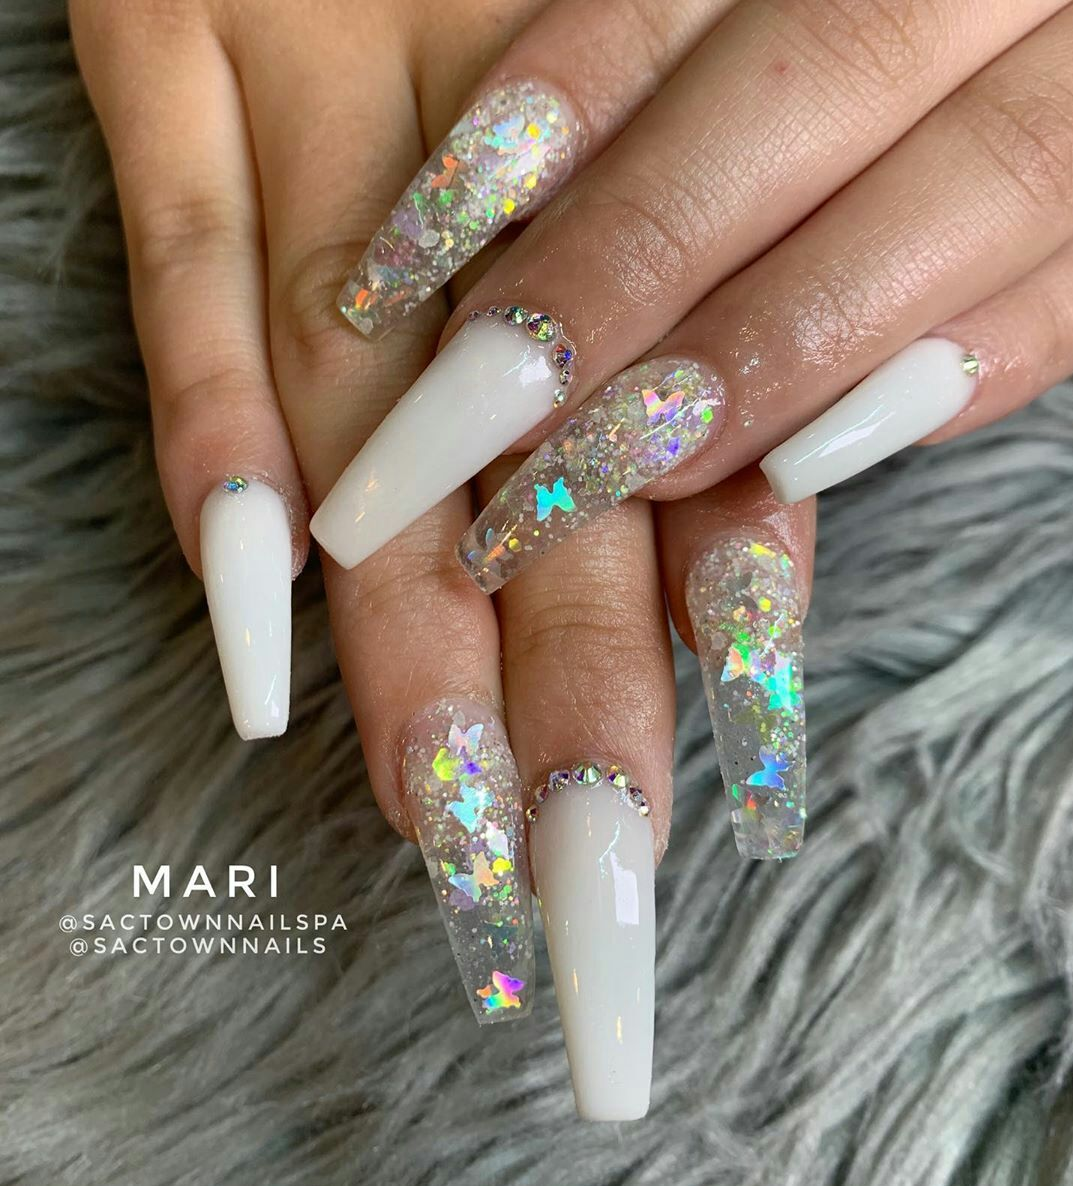 30+ Fabulous Winter Coffin Nail Designs For 2020 - The Glossychic